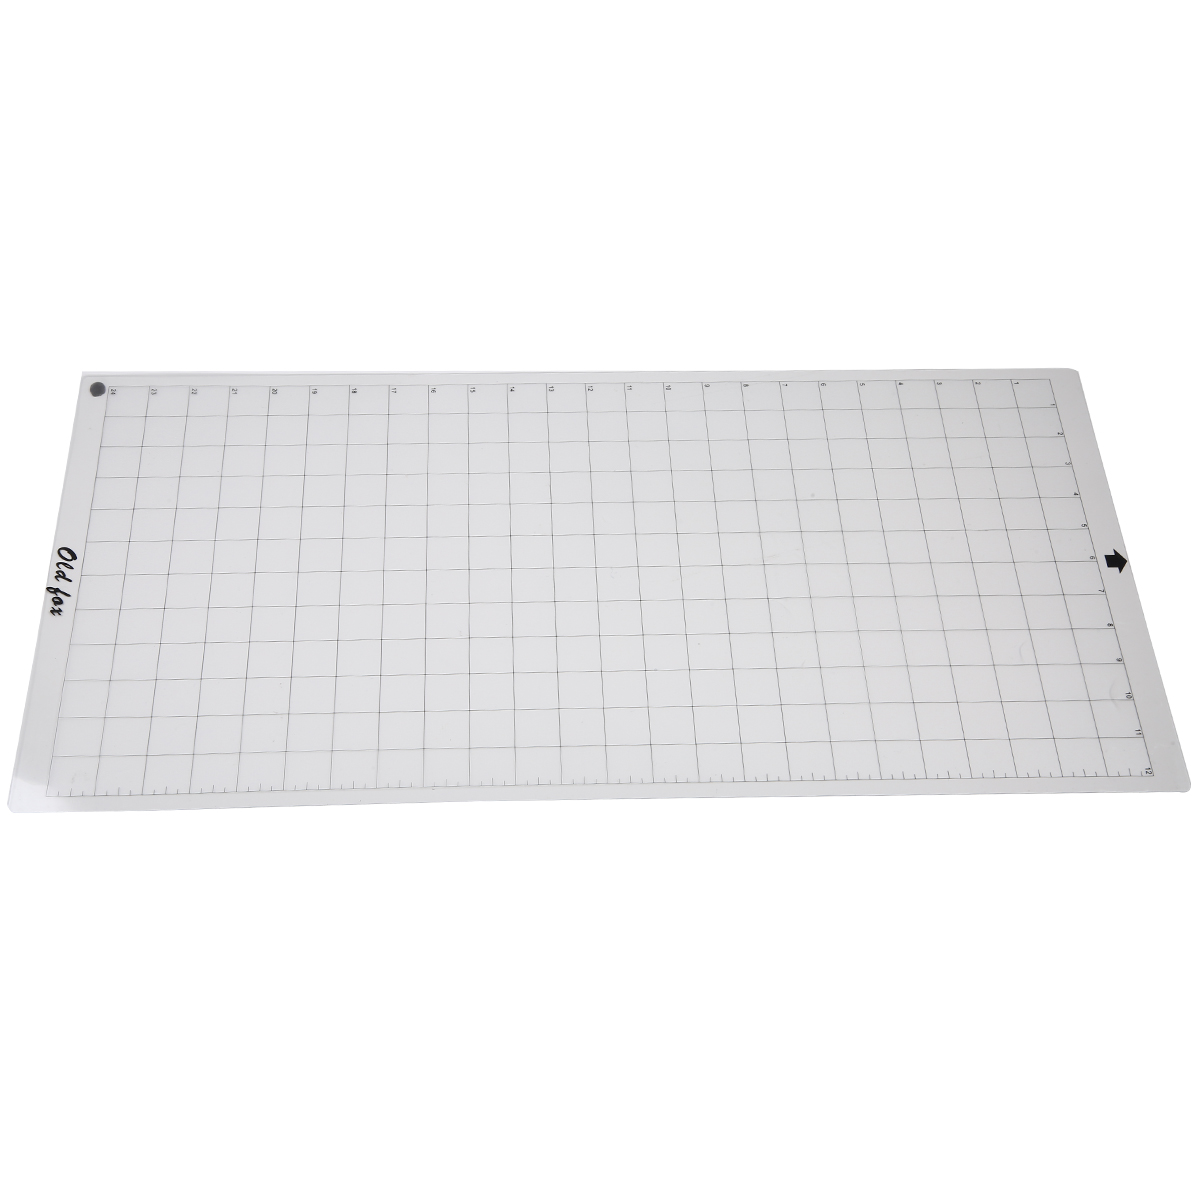 1pc Replacement Cutting Mat Transparent Light Hold Adhesive Cutting Mat With Measuring Grid For Silhouette Cameo Plotter Machine